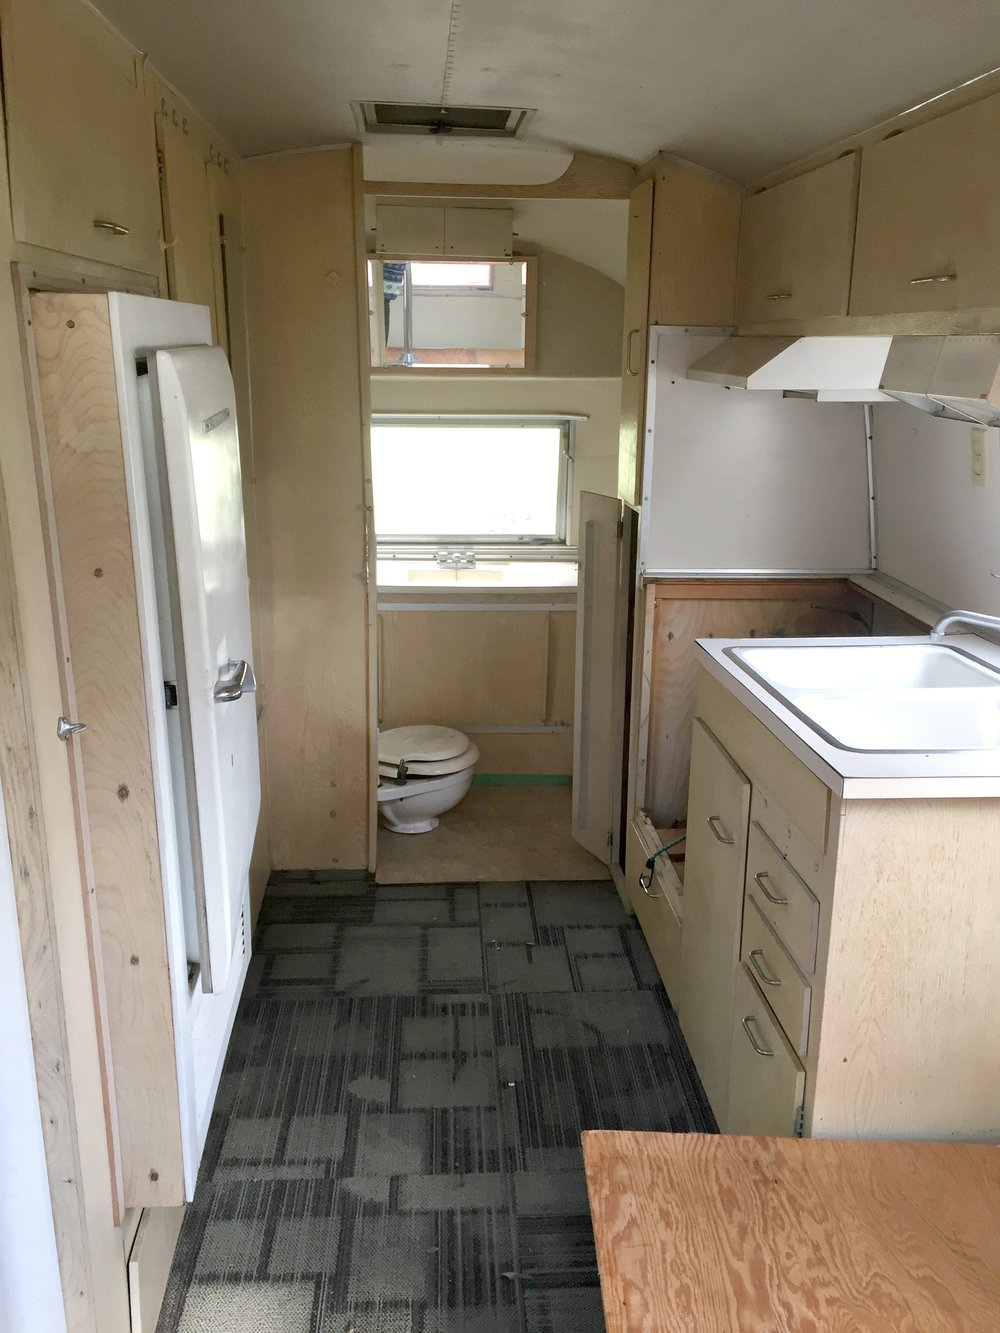 Skye the Airstream - BEFORE reno, 20 July 2017 1.jpg